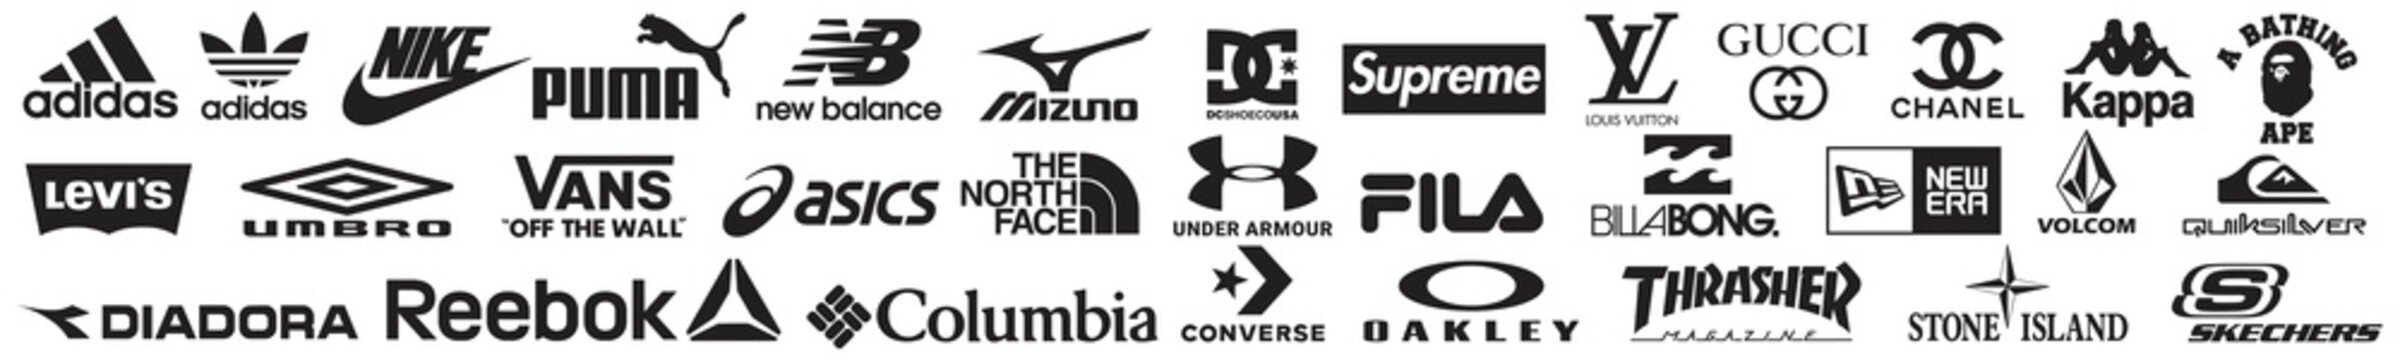 big Collection of popular clothing brands logo, Nike, adidas, gucci, Louis Vuitton, Coco Chanel, Under Armour, Puma, The North Face. skechers, Columbia Sportswear, ASICS, Converse. Vector illustration